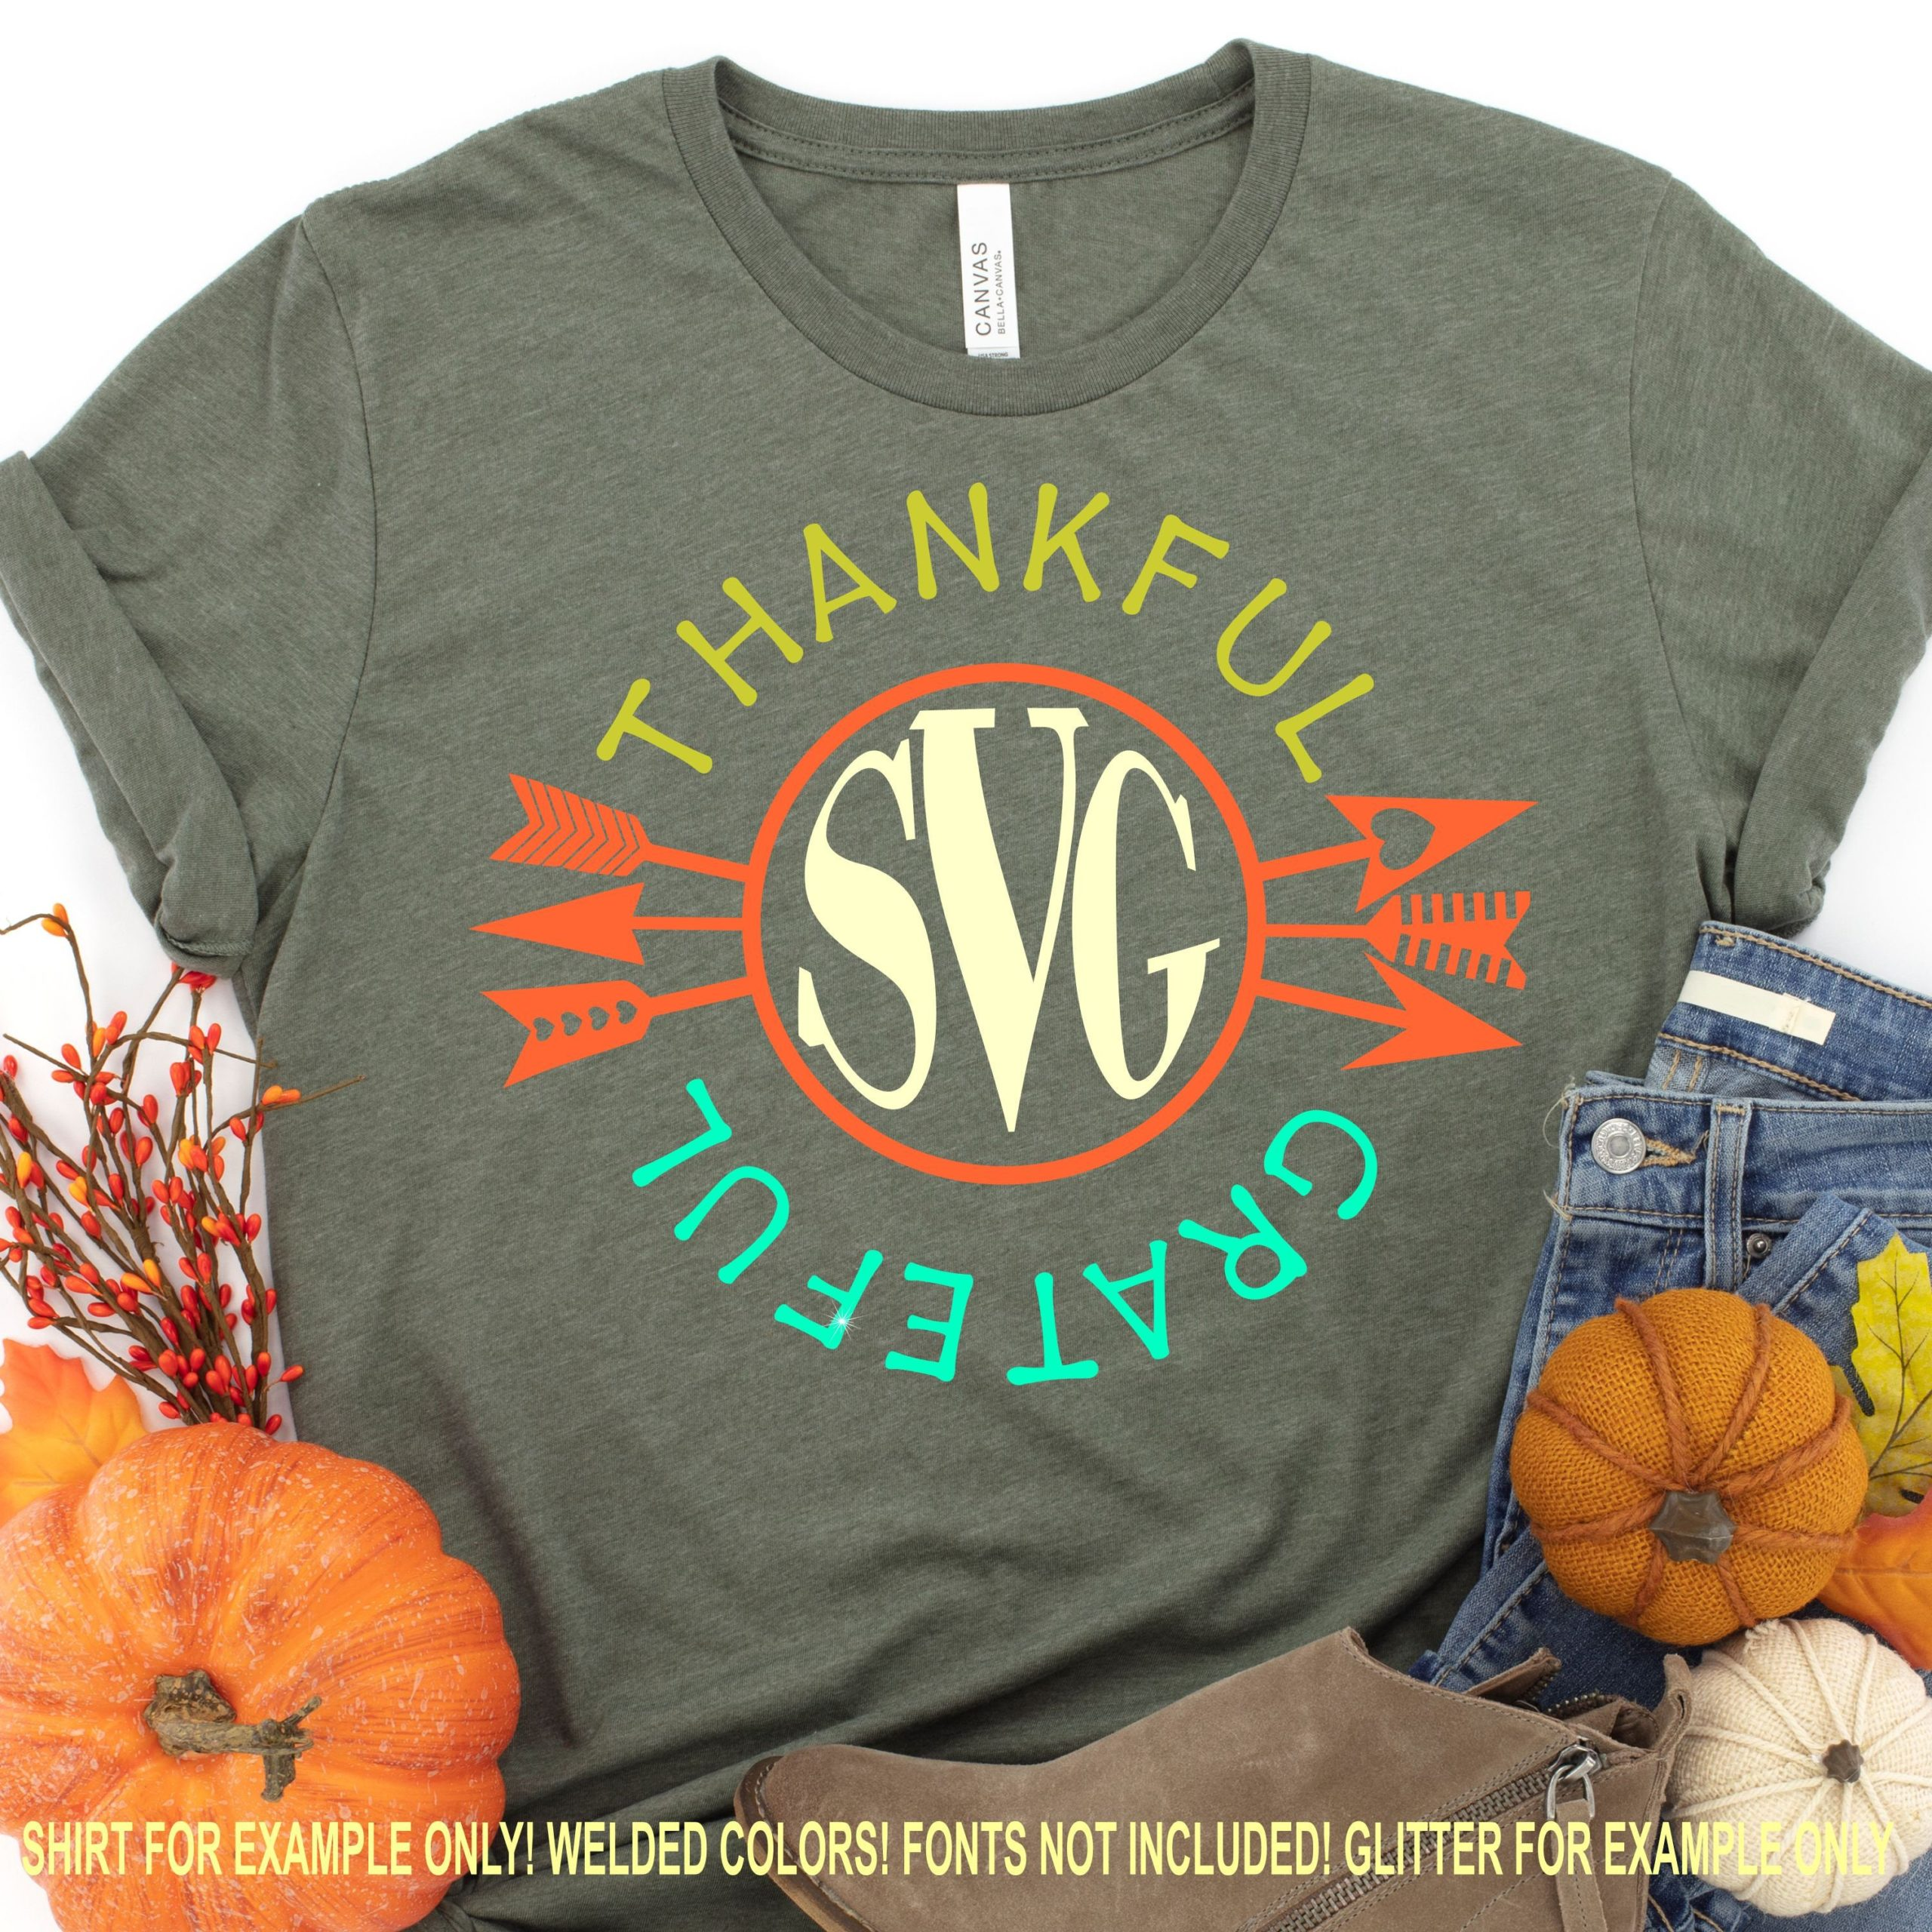 Thankful-and-grateful-svg-thankful-svg-fall-svg-feather-svg-autumn-svg-thanksgiving-svg-digital-download-commercial-use-svgs-dxf-5f721ace